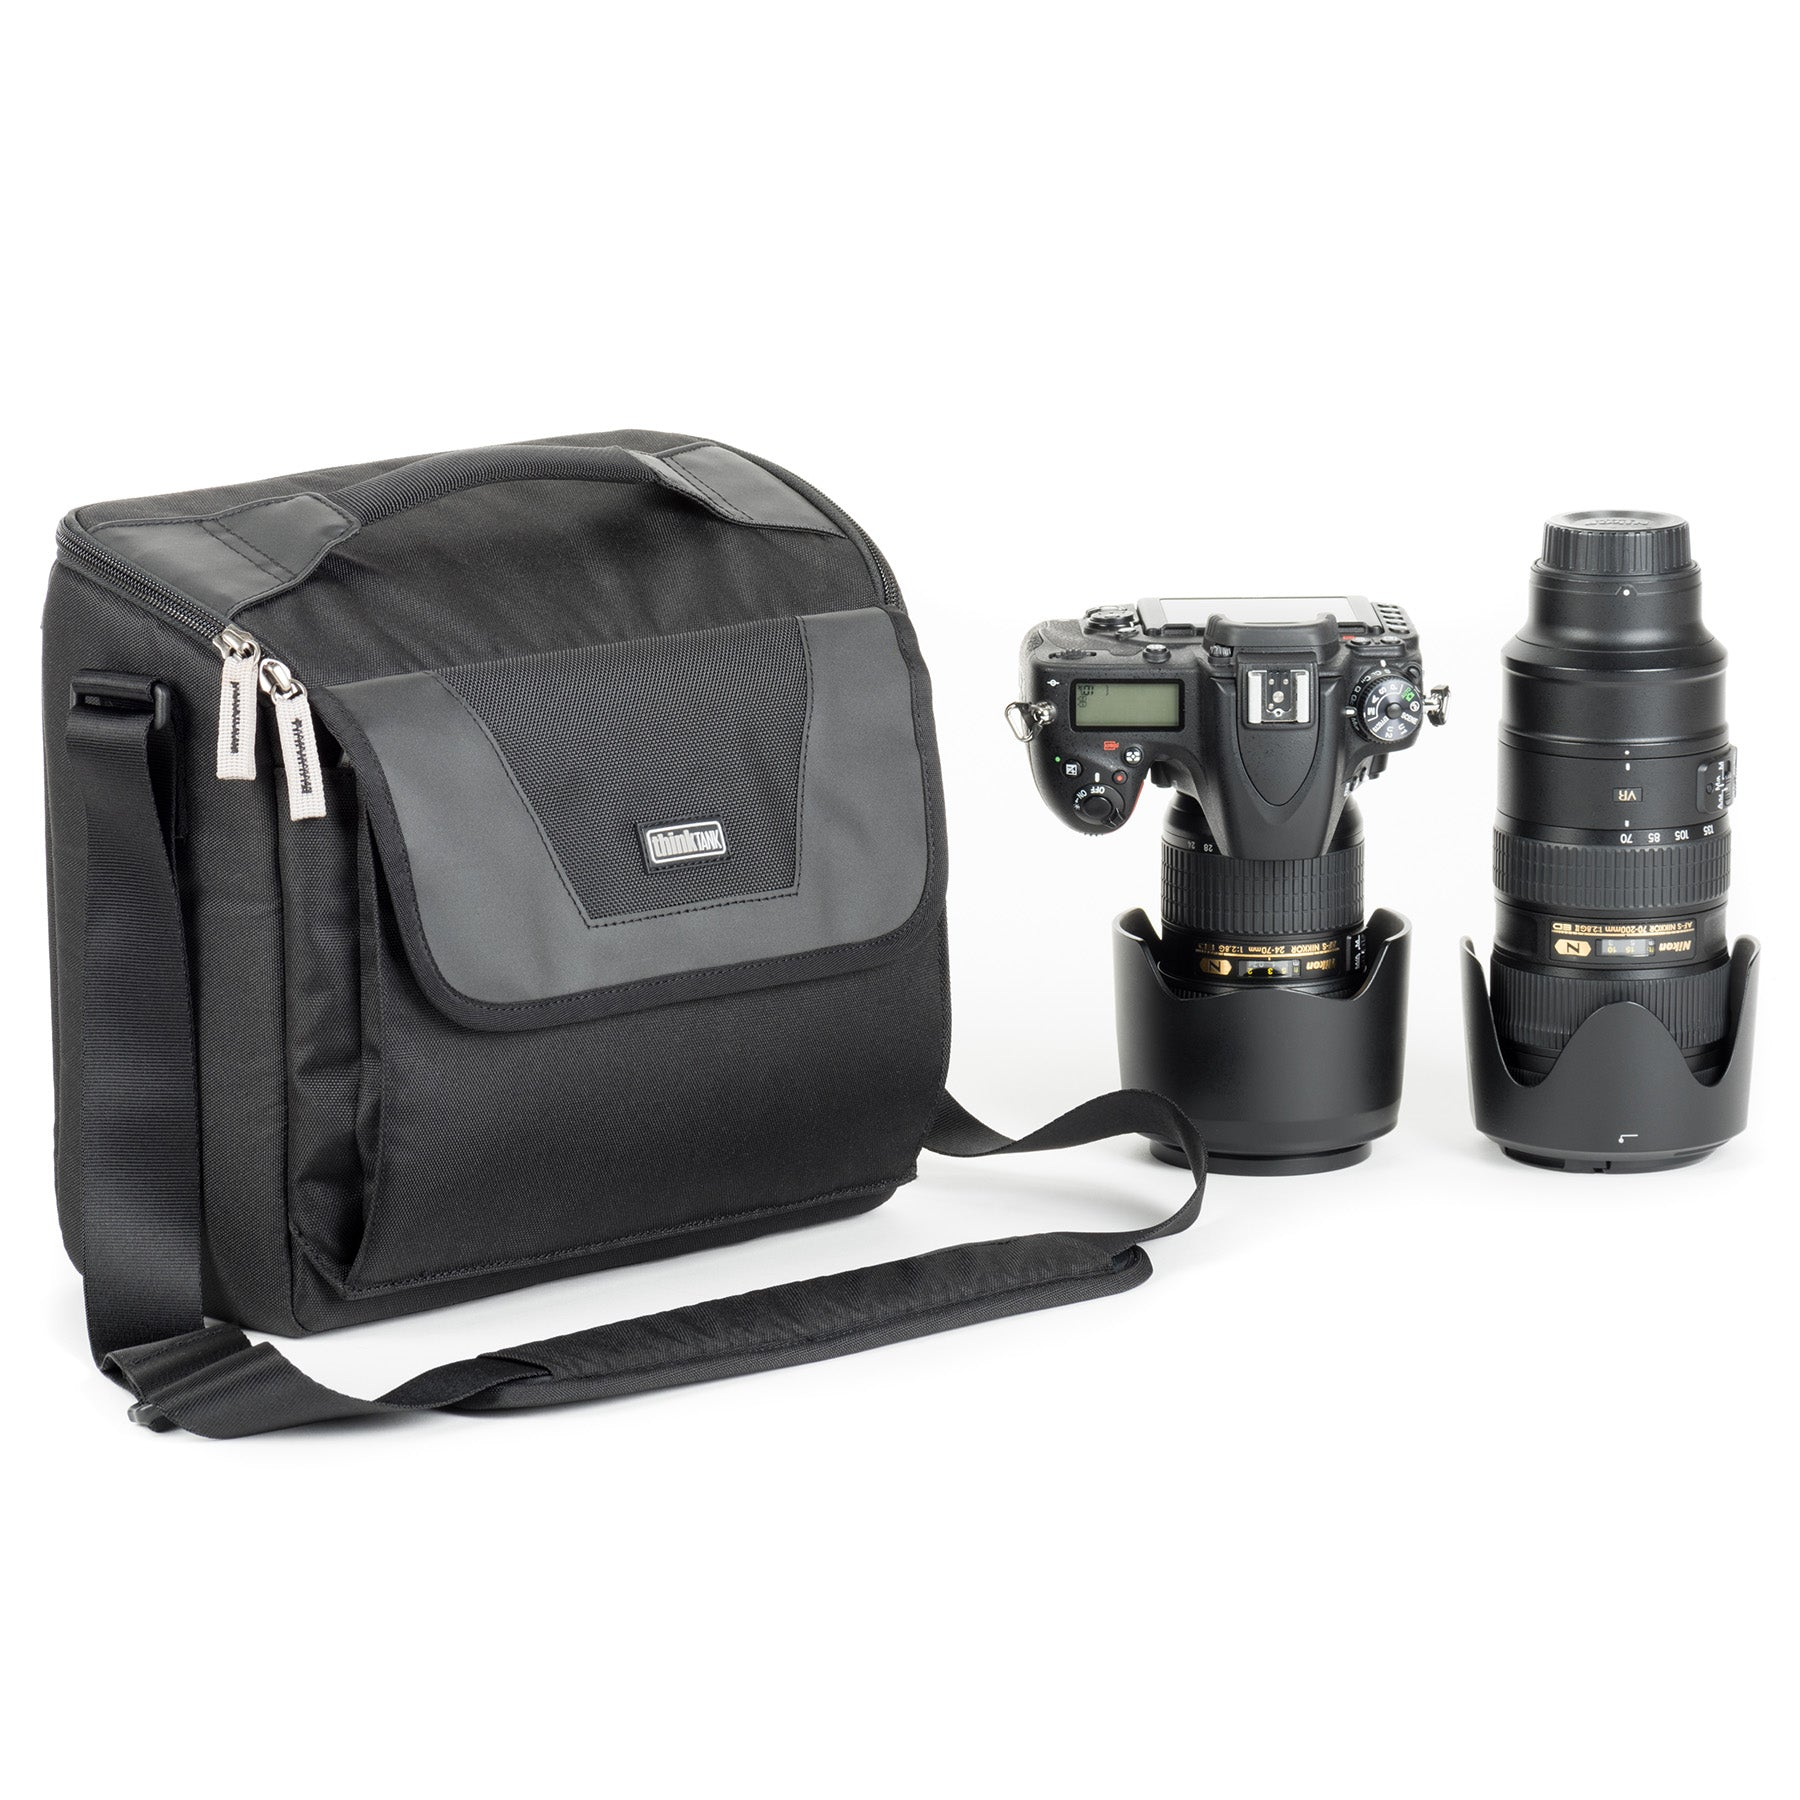 "Fits an ungripped DSLR or Mirrorless camera body, 2‒4 standard telephoto lenses with hoods attached and reversed, and a 10"" tablet."